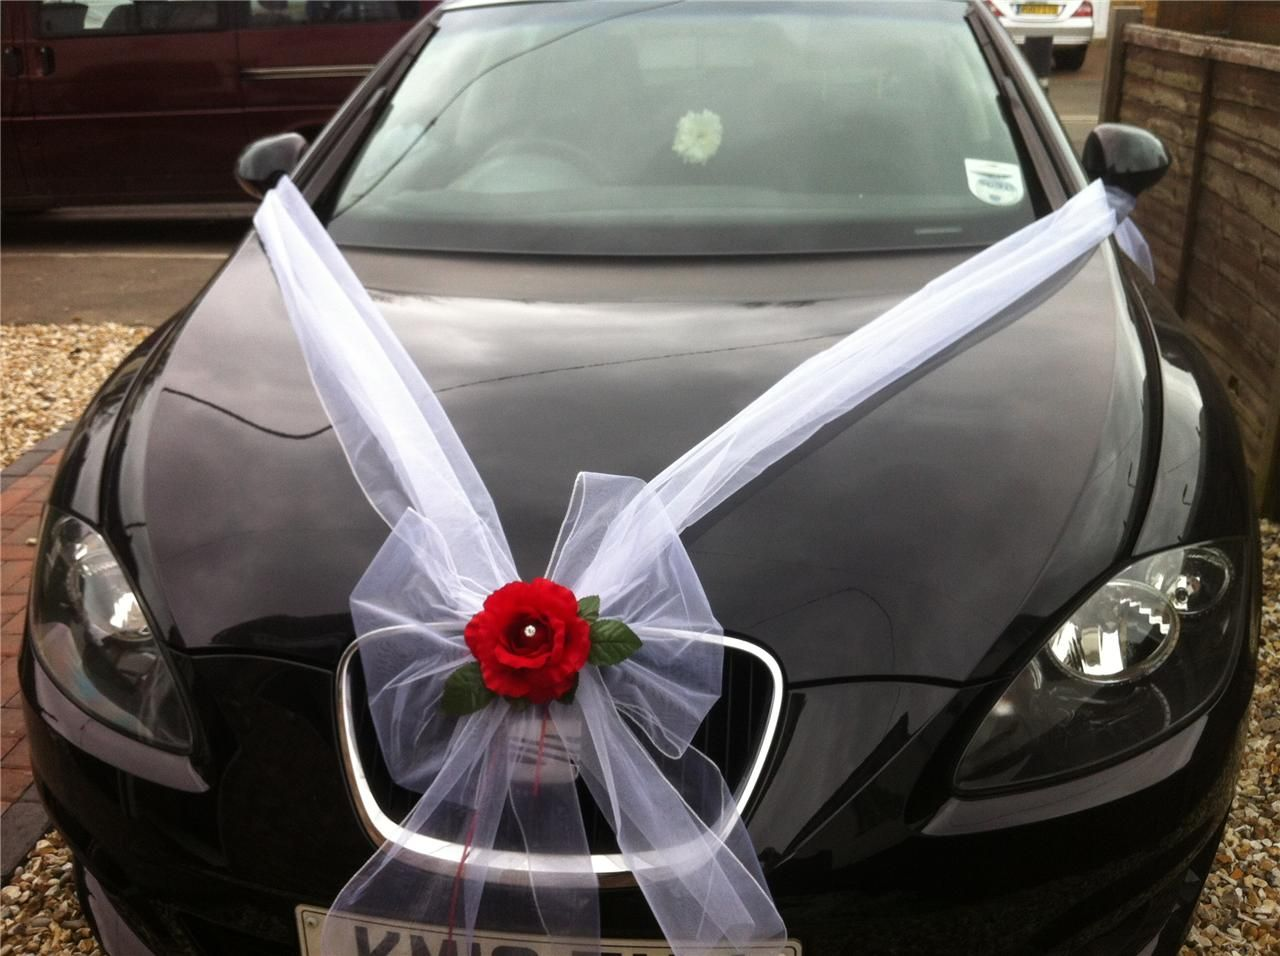 Car Decoration Weding Wedding Car Flower Decoration White Organza Rose Detail Ribbon 2